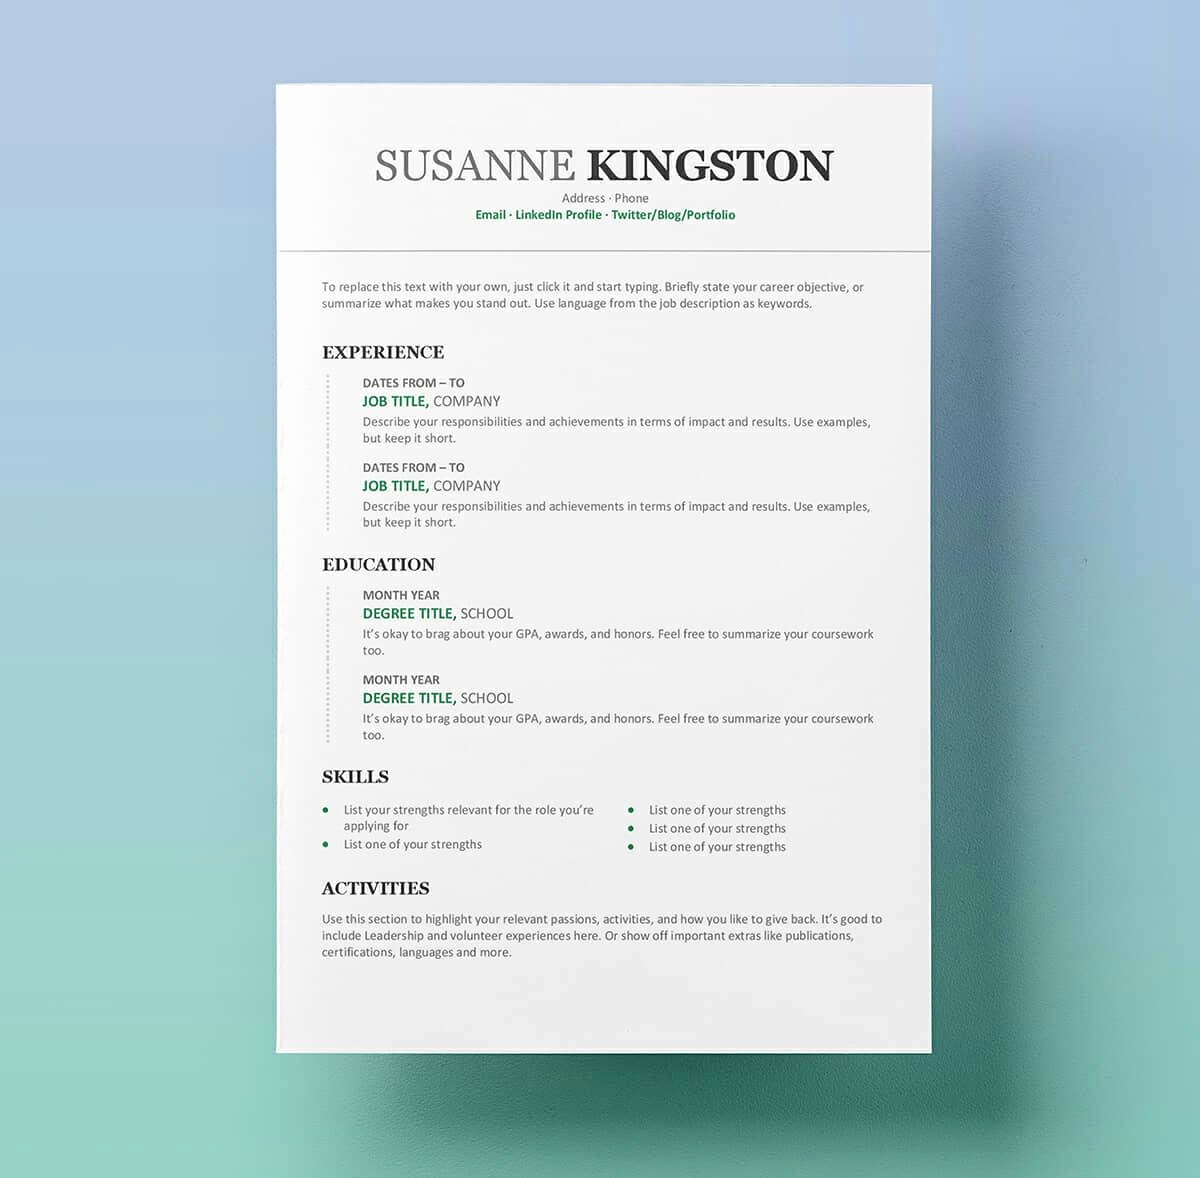 Free Printable Resume Templates Best Of Resume Templates for Word Free 15 Examples for Download